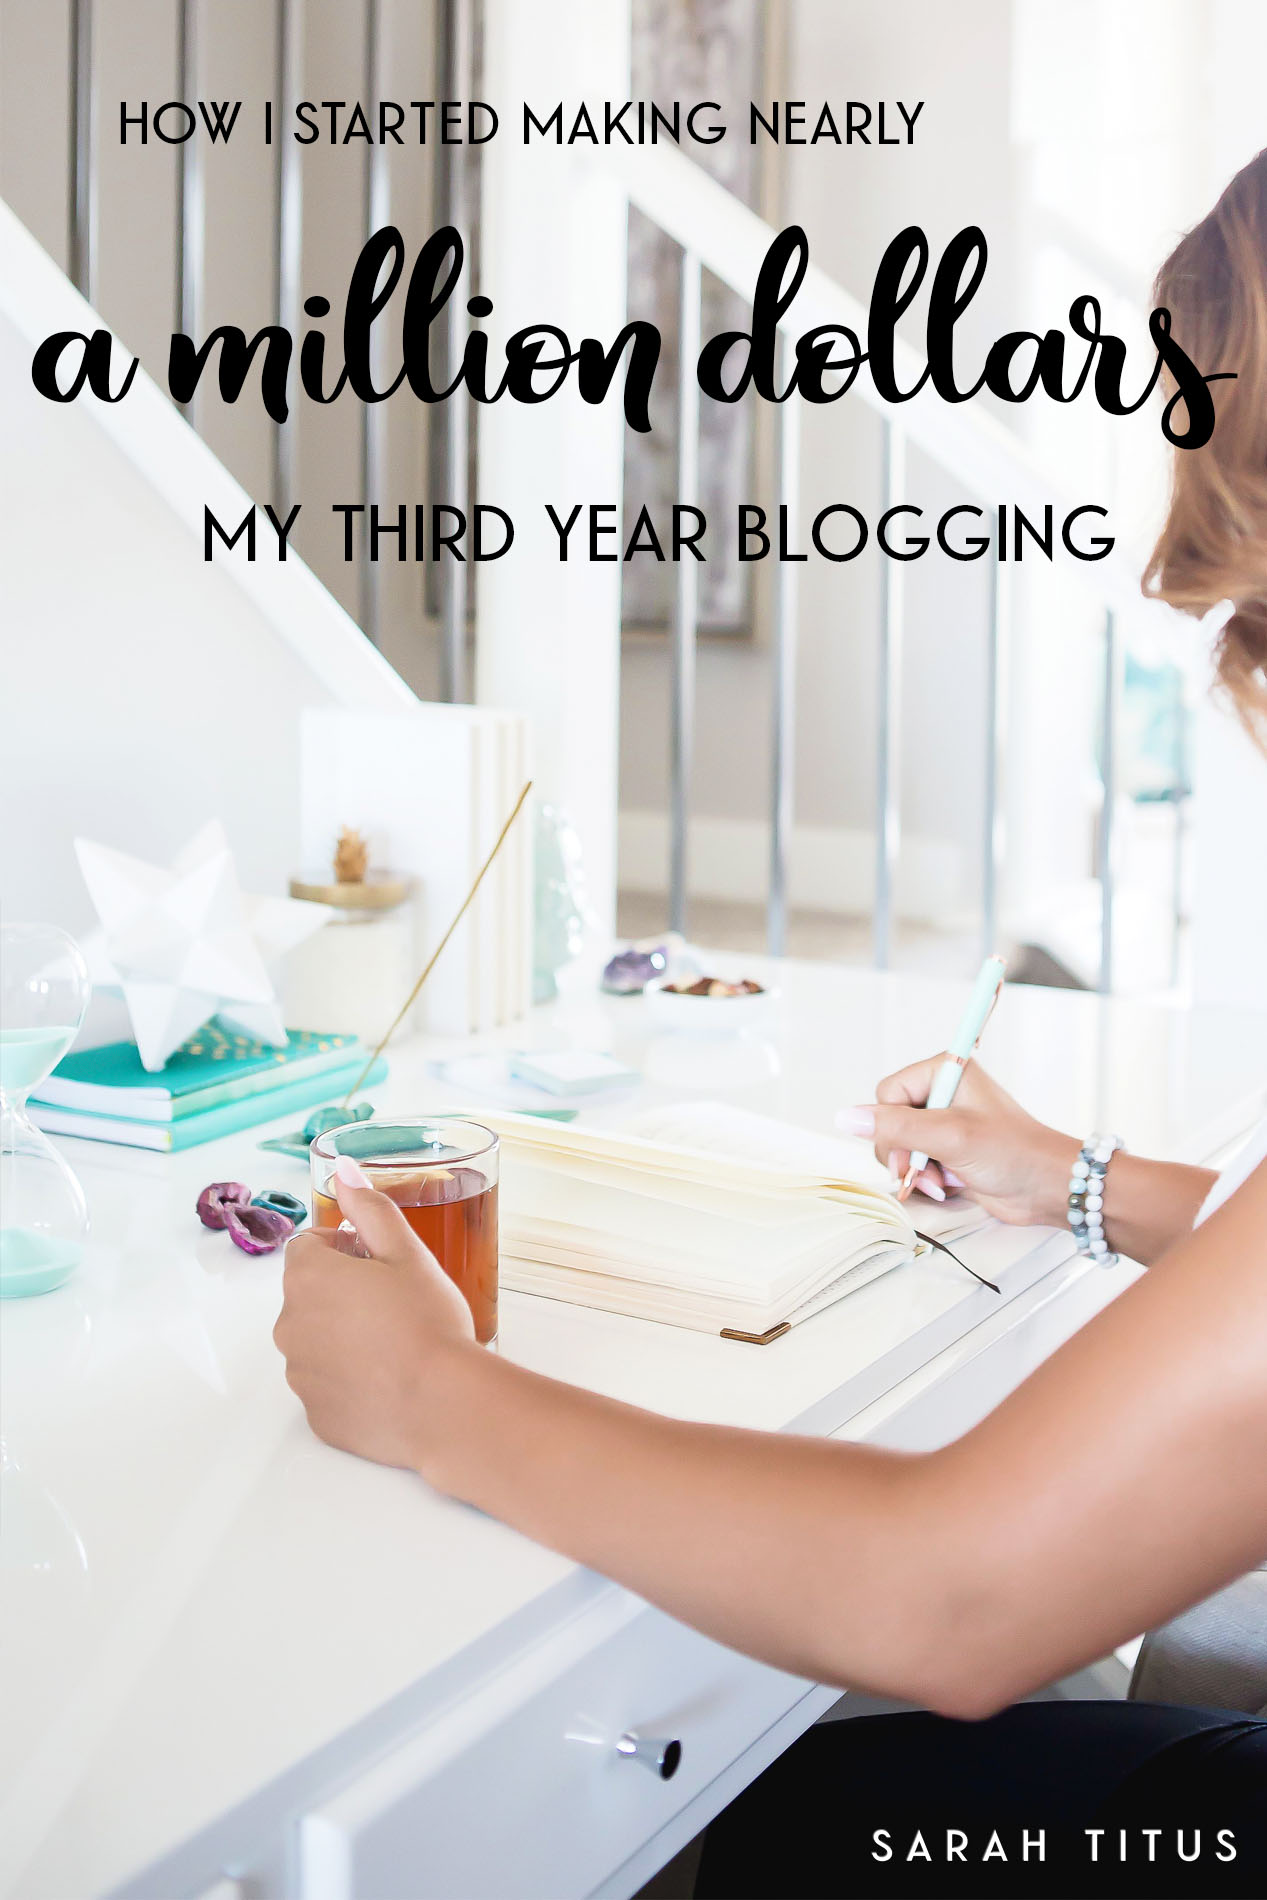 Who says it takes years to grow a successful blog? My third year blogging, I made nearly a million dollars!!! All as a single stay-at-home-mom!